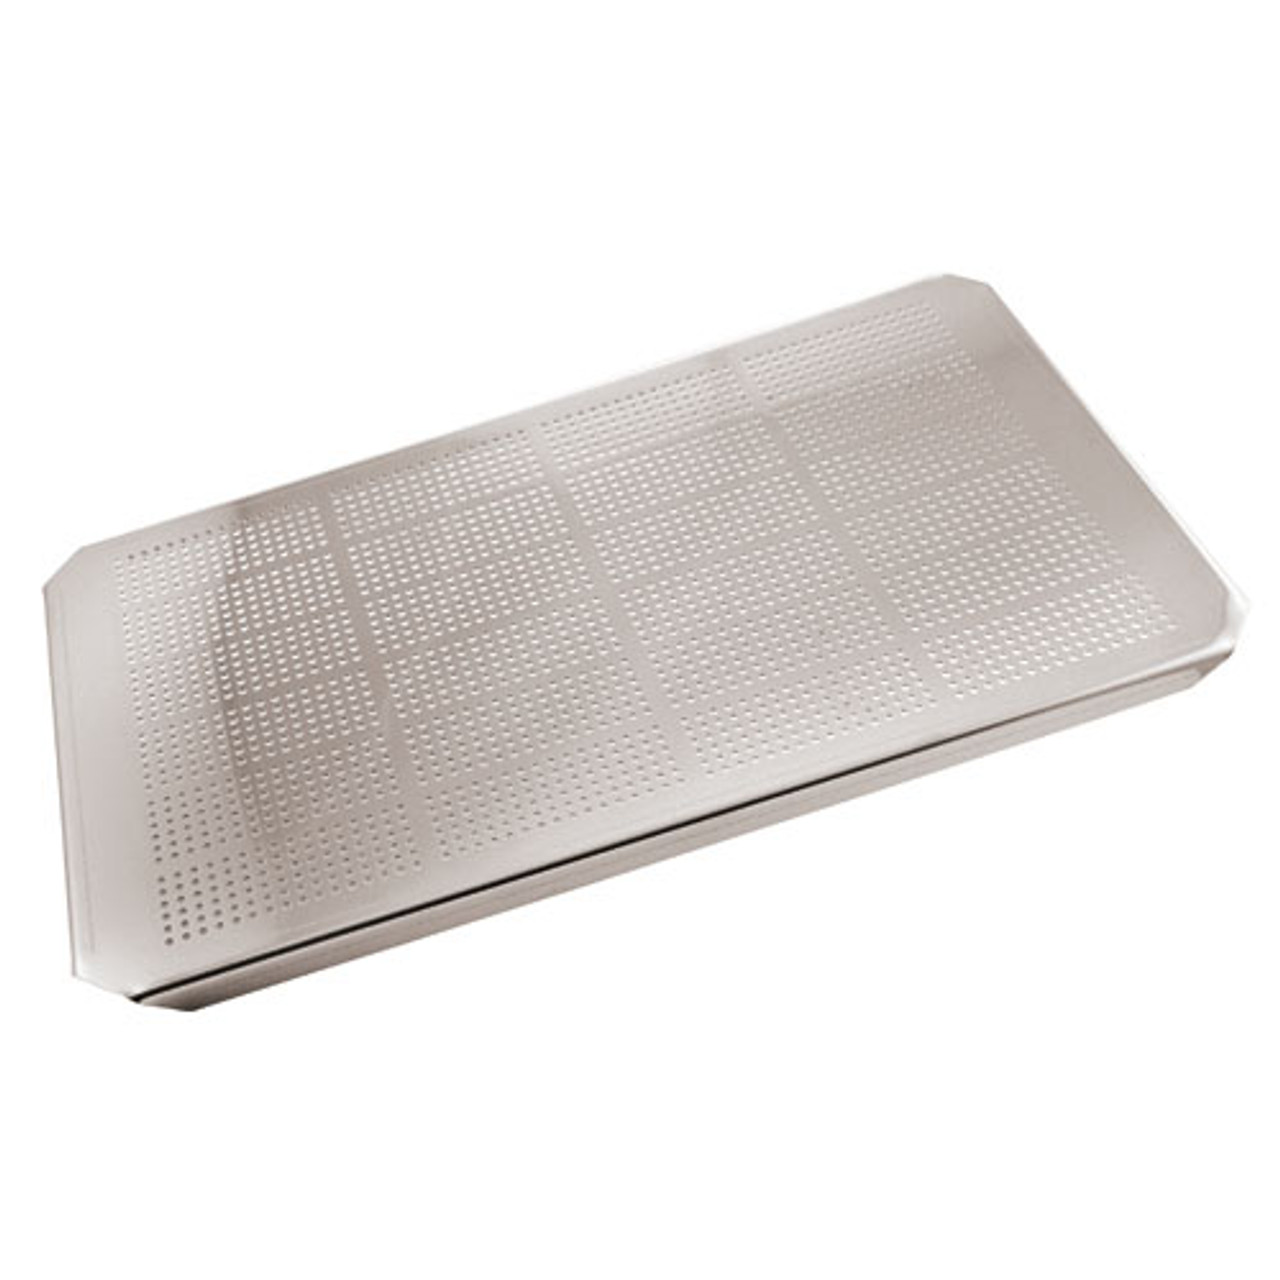 Hotel Pan 1/3 Drainer Plate,